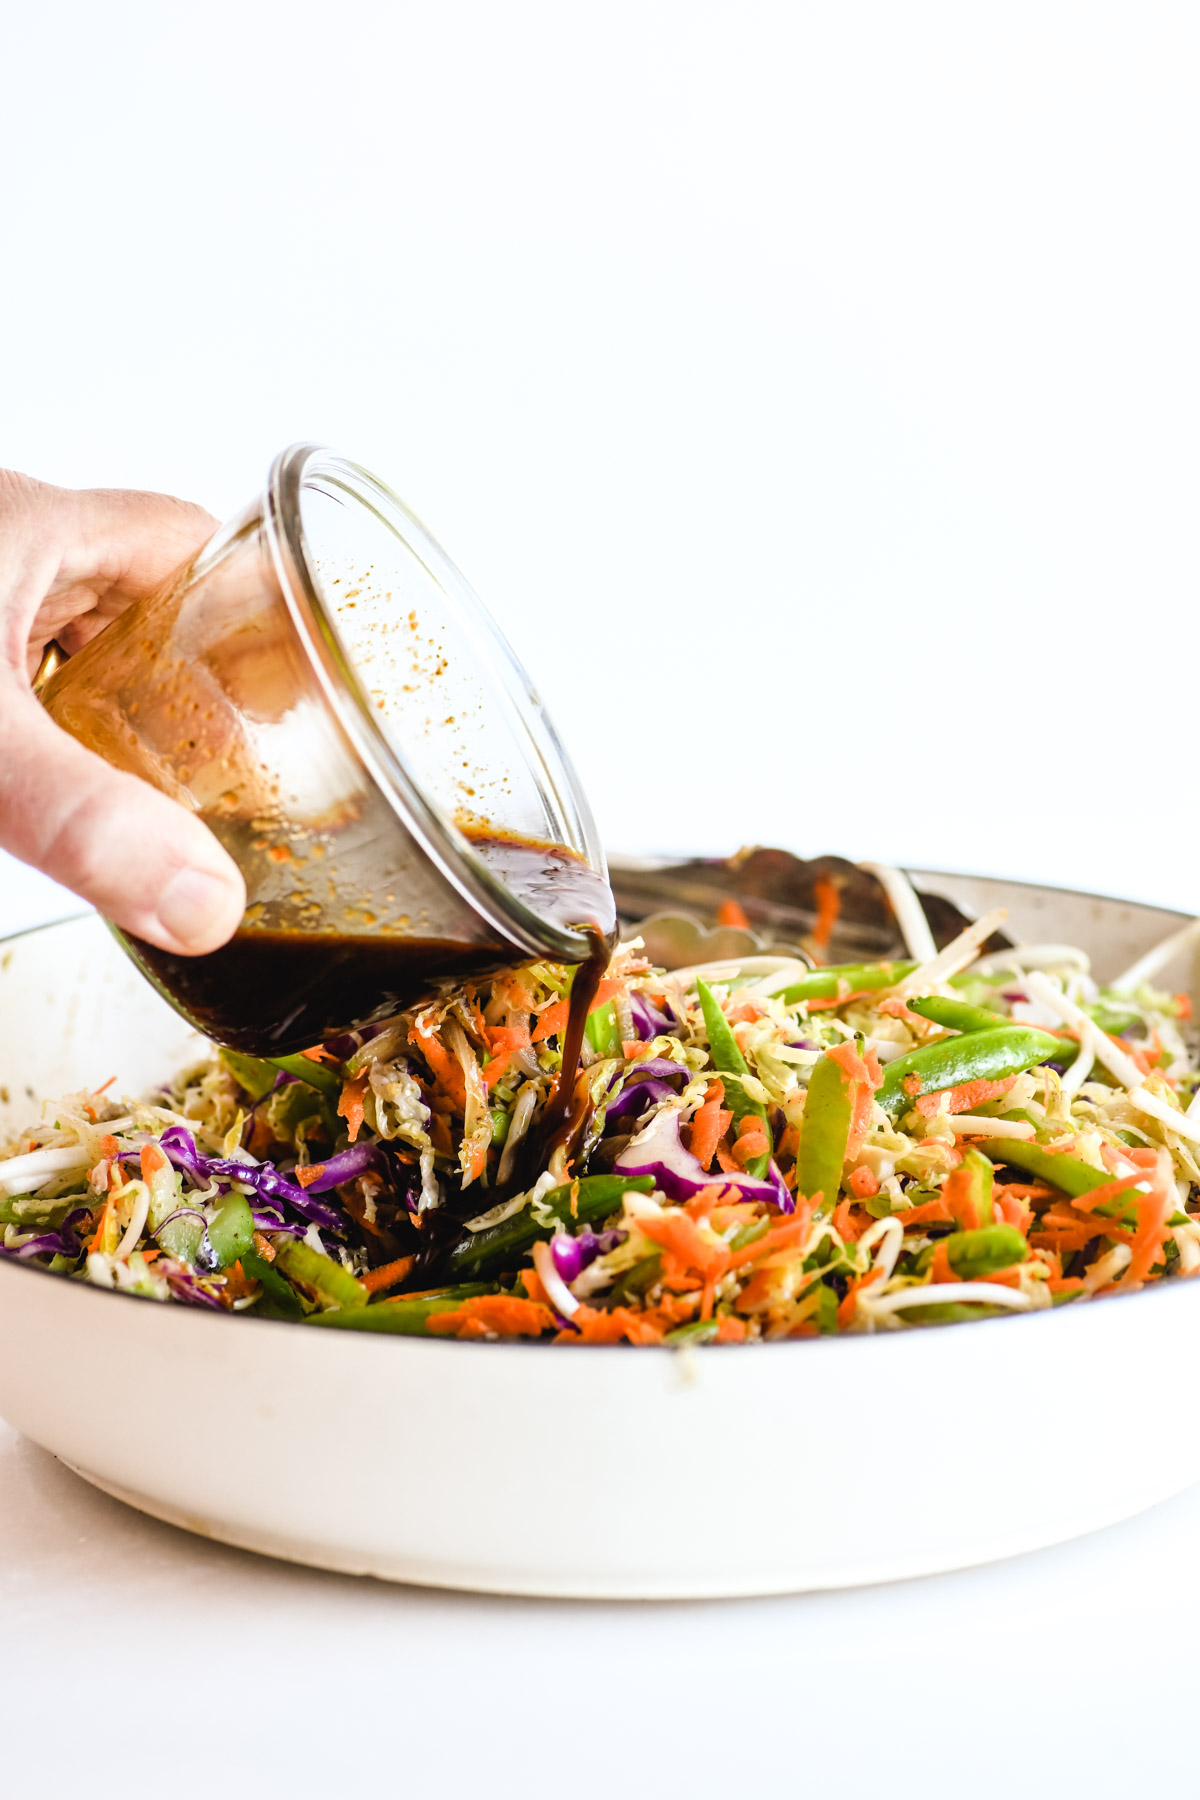 pouring sauce on egg roll bowl mixture